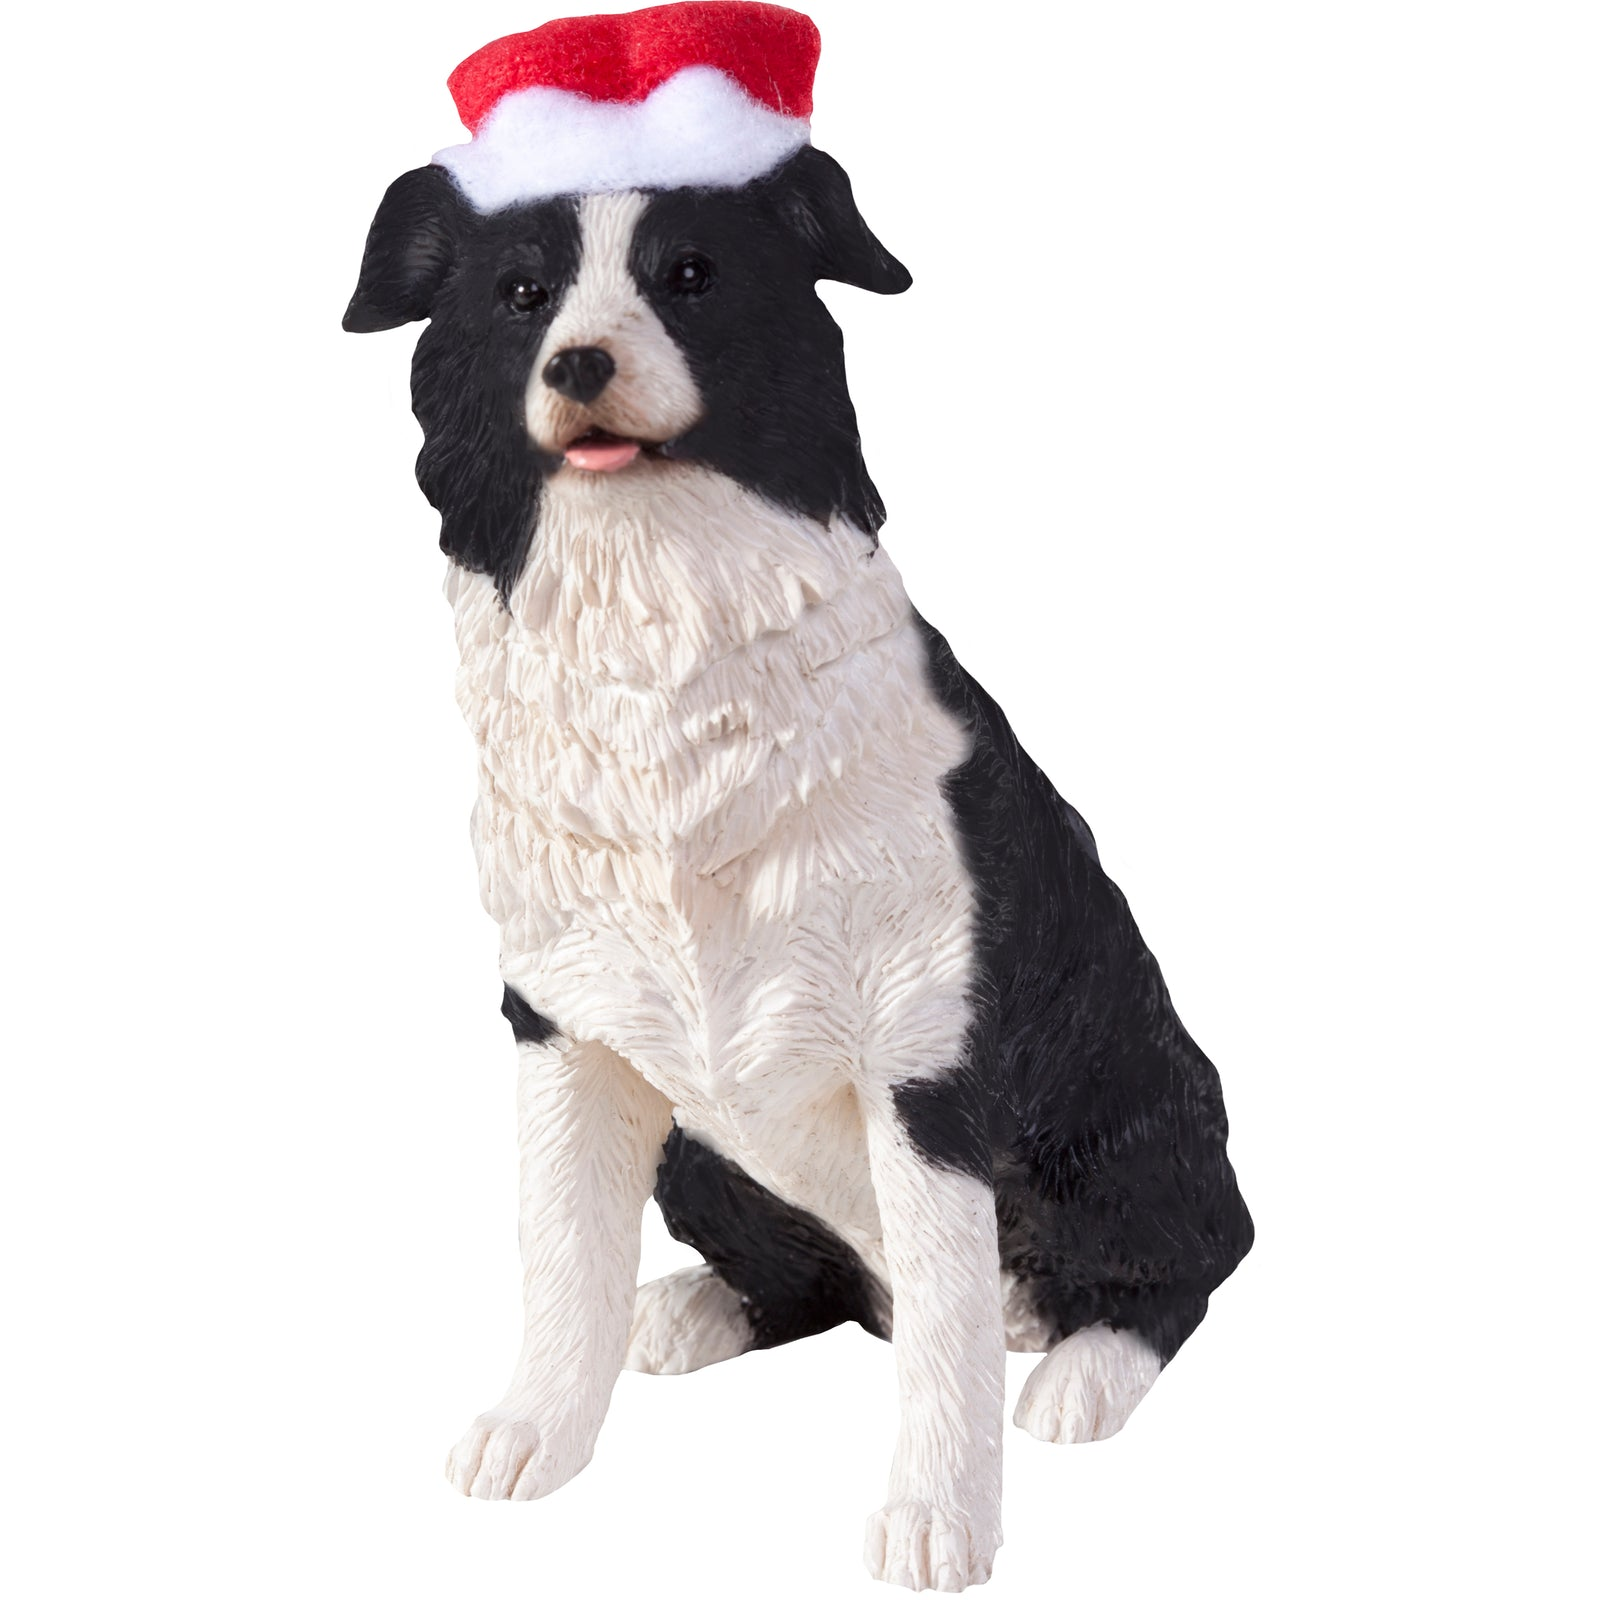 Sandicast Sitting Border Collie w/ Santa's Hat Christmas Dog Ornament